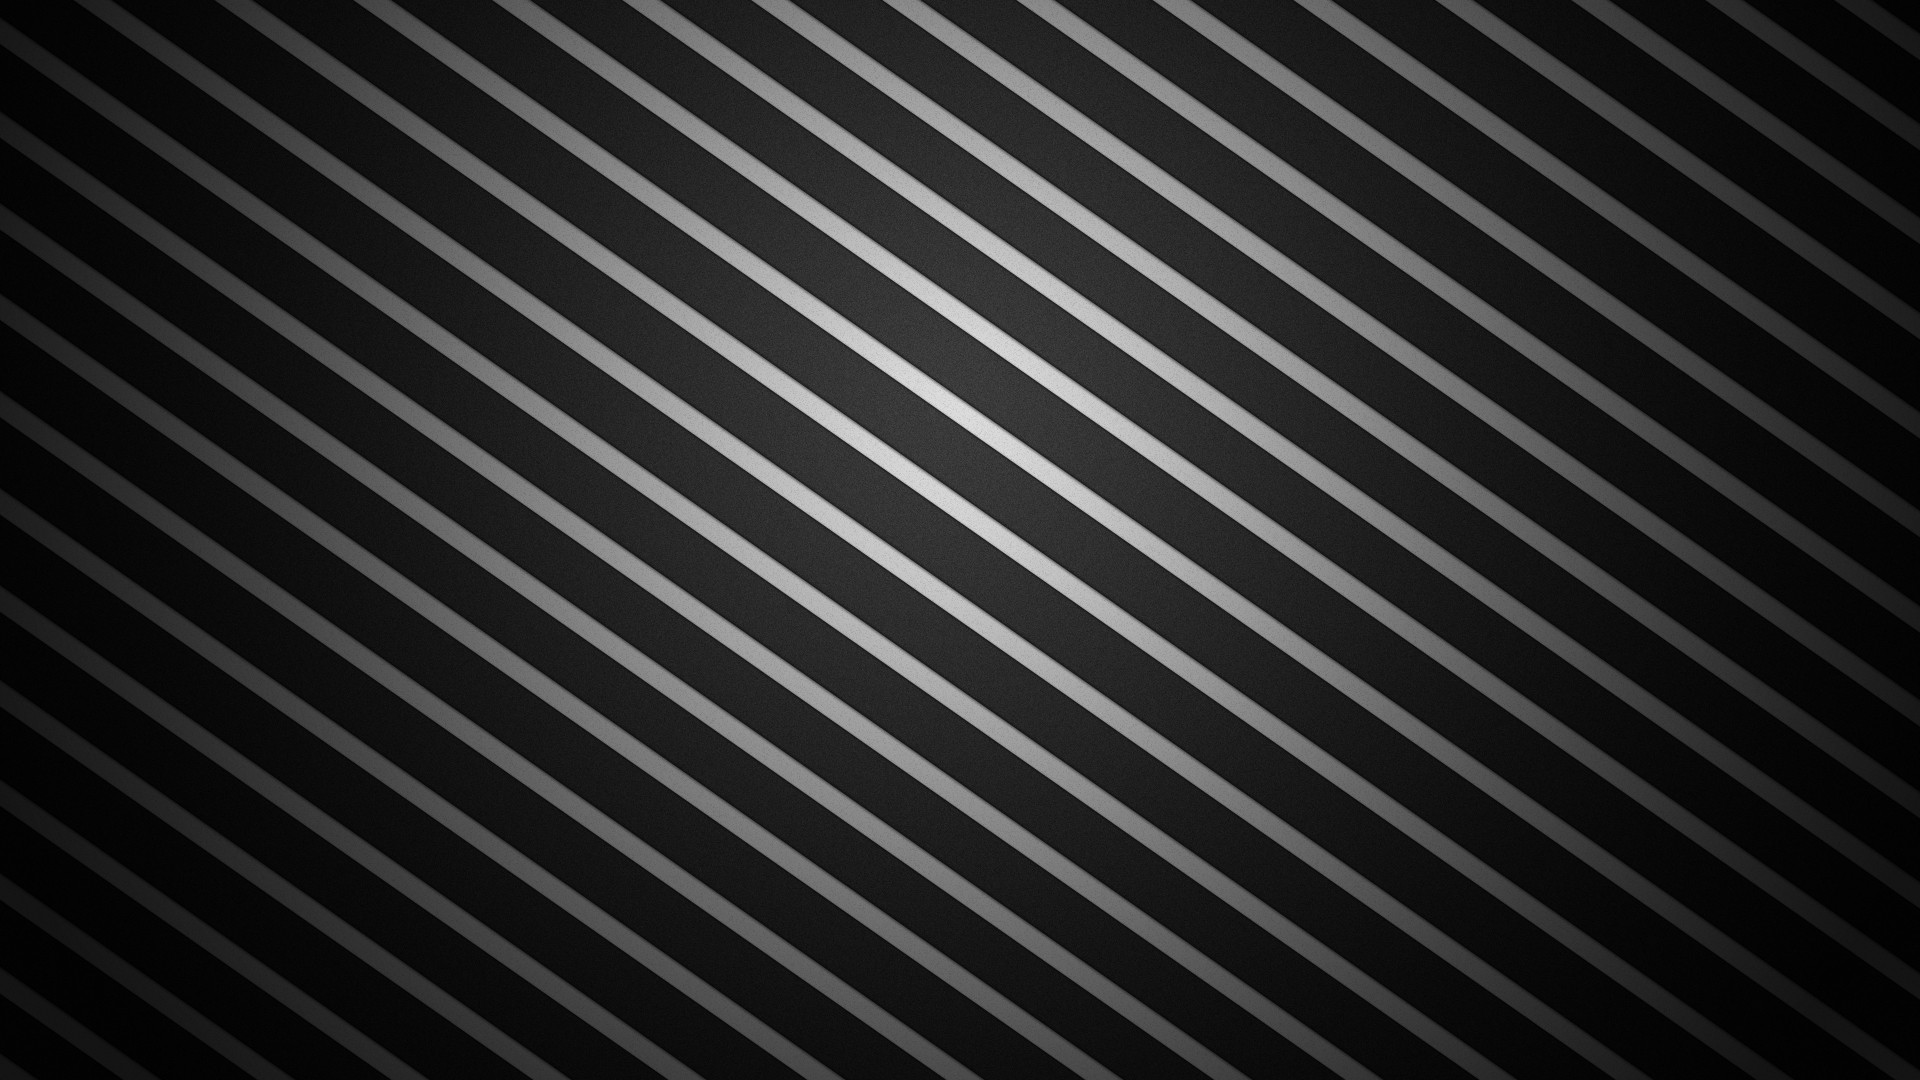 black abstract wallpaper 36 desktop background black abstract wallpaper 36 desktop background